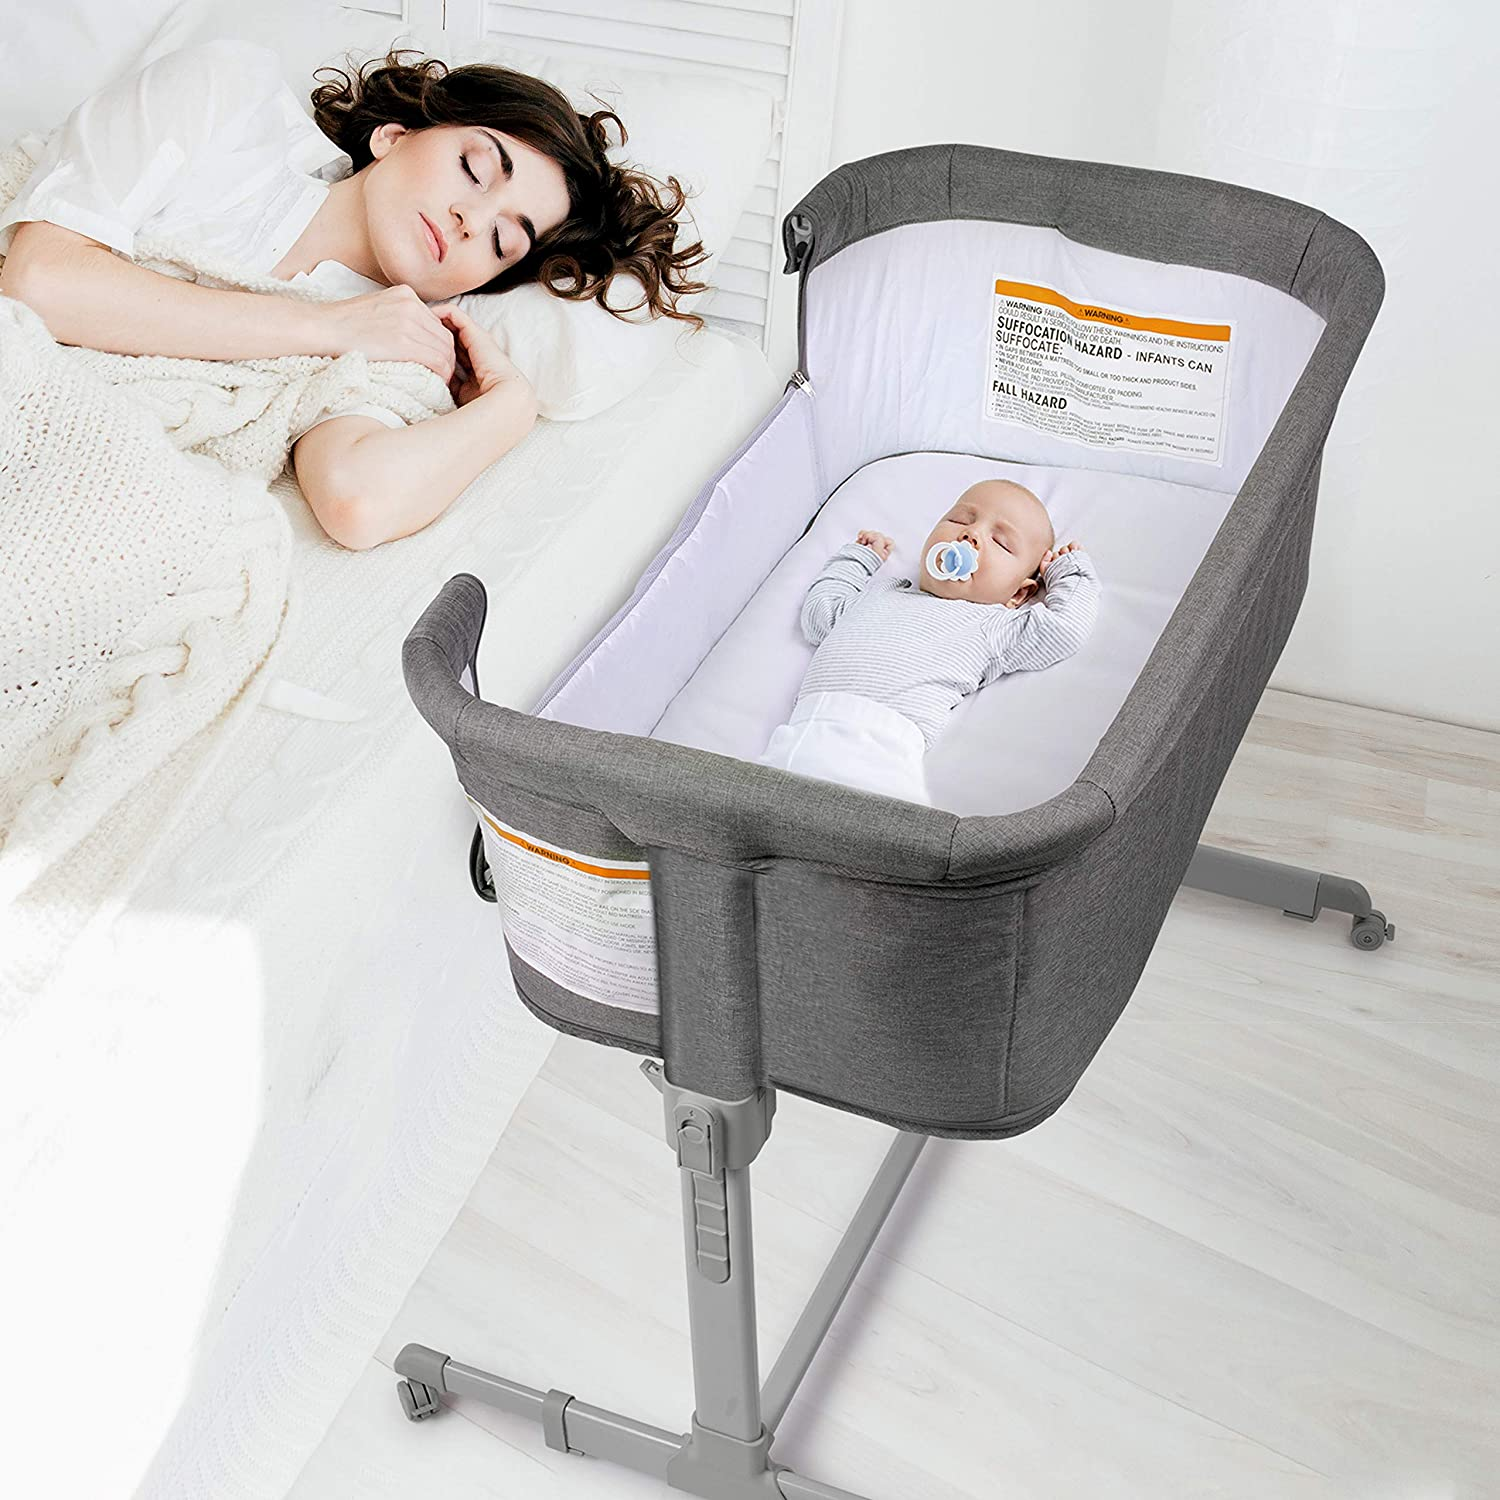 3 in 1 Baby Bassinet, Bedside Sleeper for Baby, Playpen, Easy Folding Portable Crib (Grey)- KoolaBaby